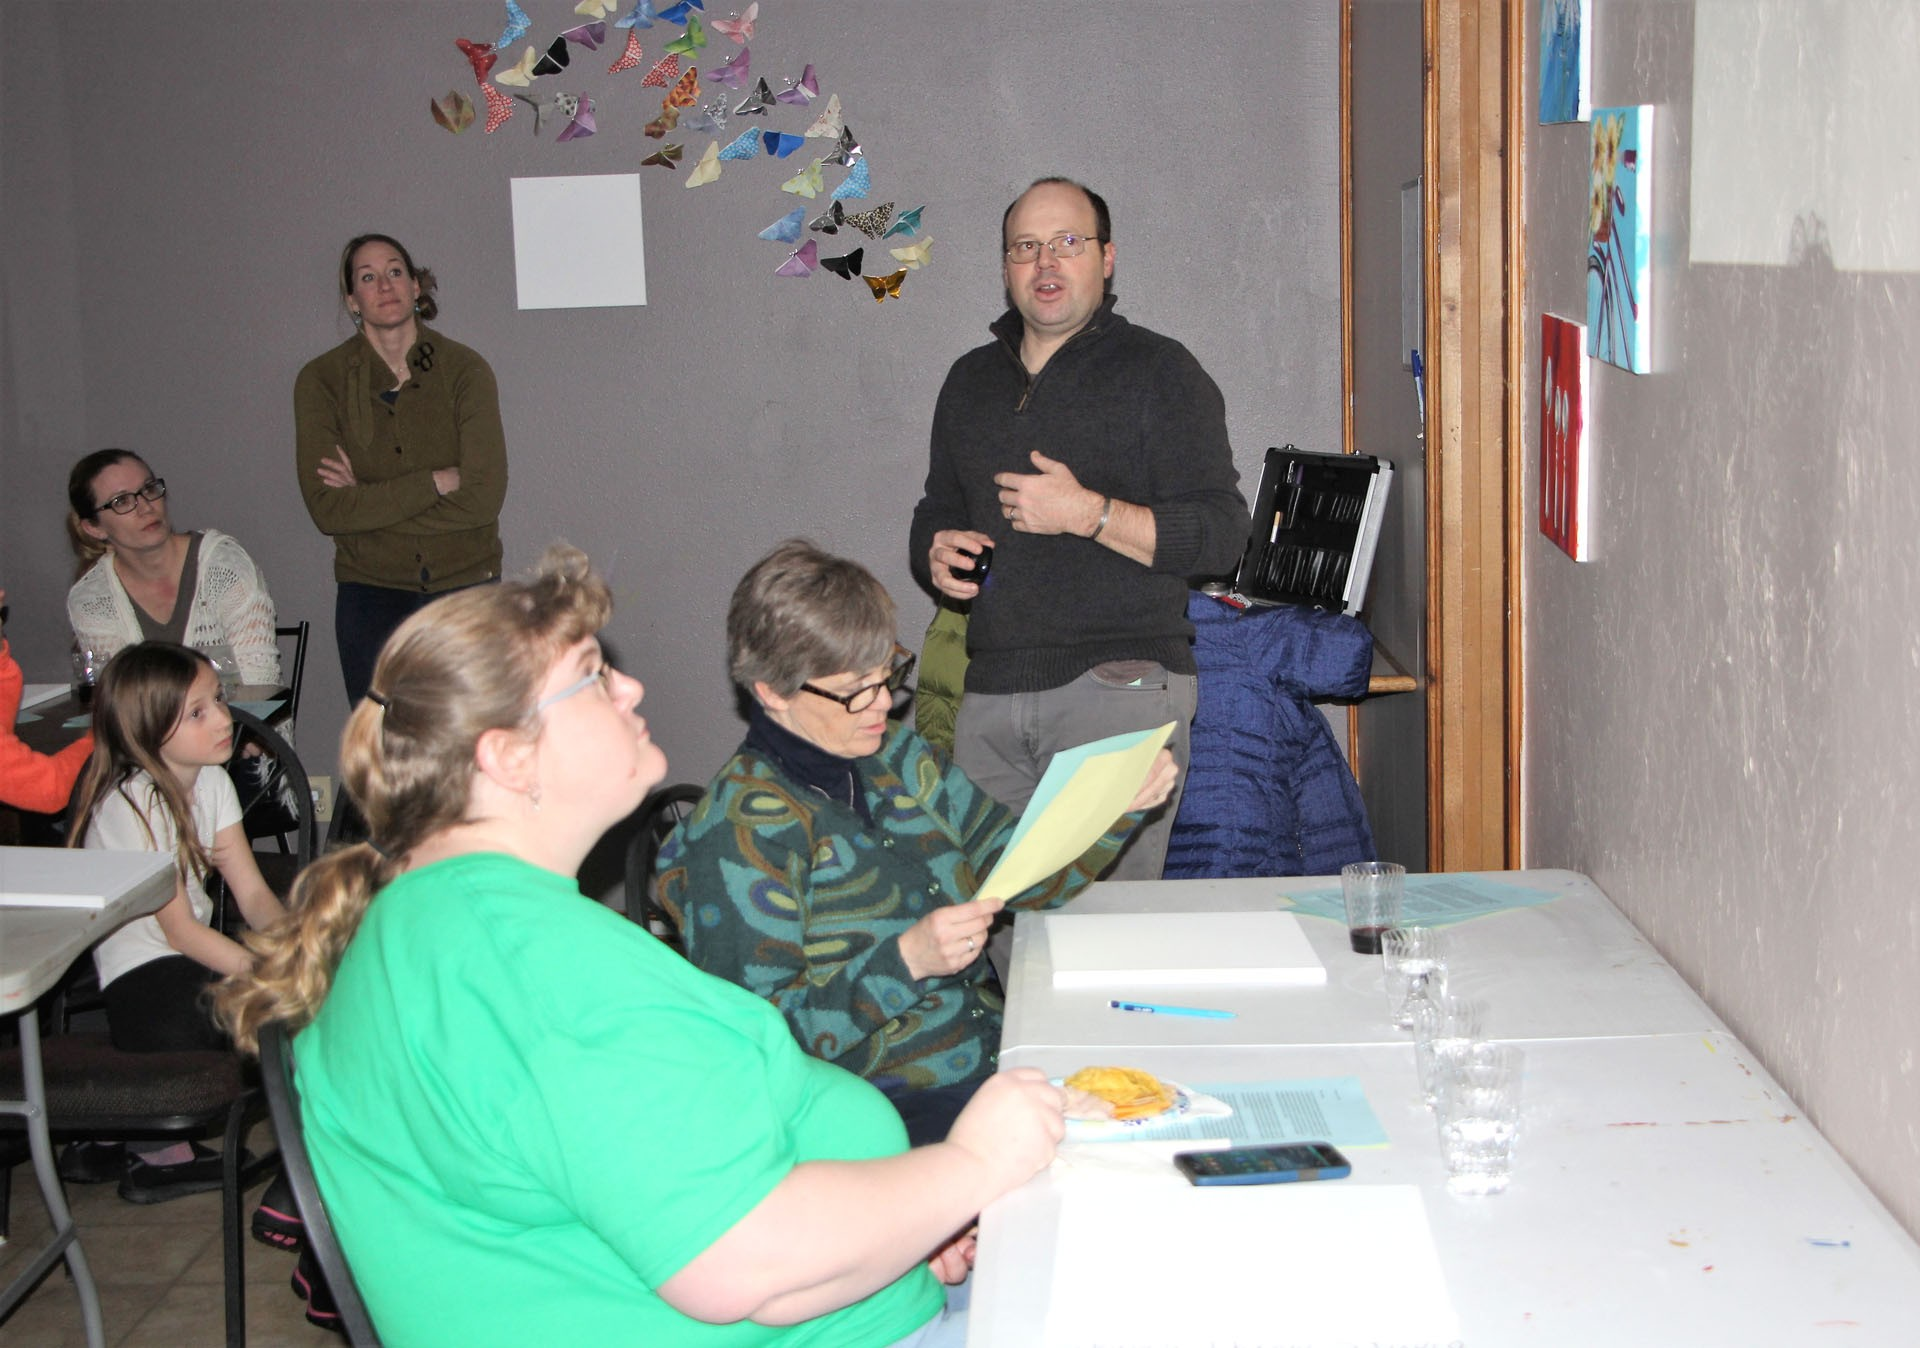 <strong>During the first Sip 'n Paint fundraiser in January, John Tooke presented information on the Poland trip he took a student on last year through the Candles Museum and Education Center. Tooke with the help of Keely Perkins plans on doing more Sip 'n Paint fundraisers. </strong>